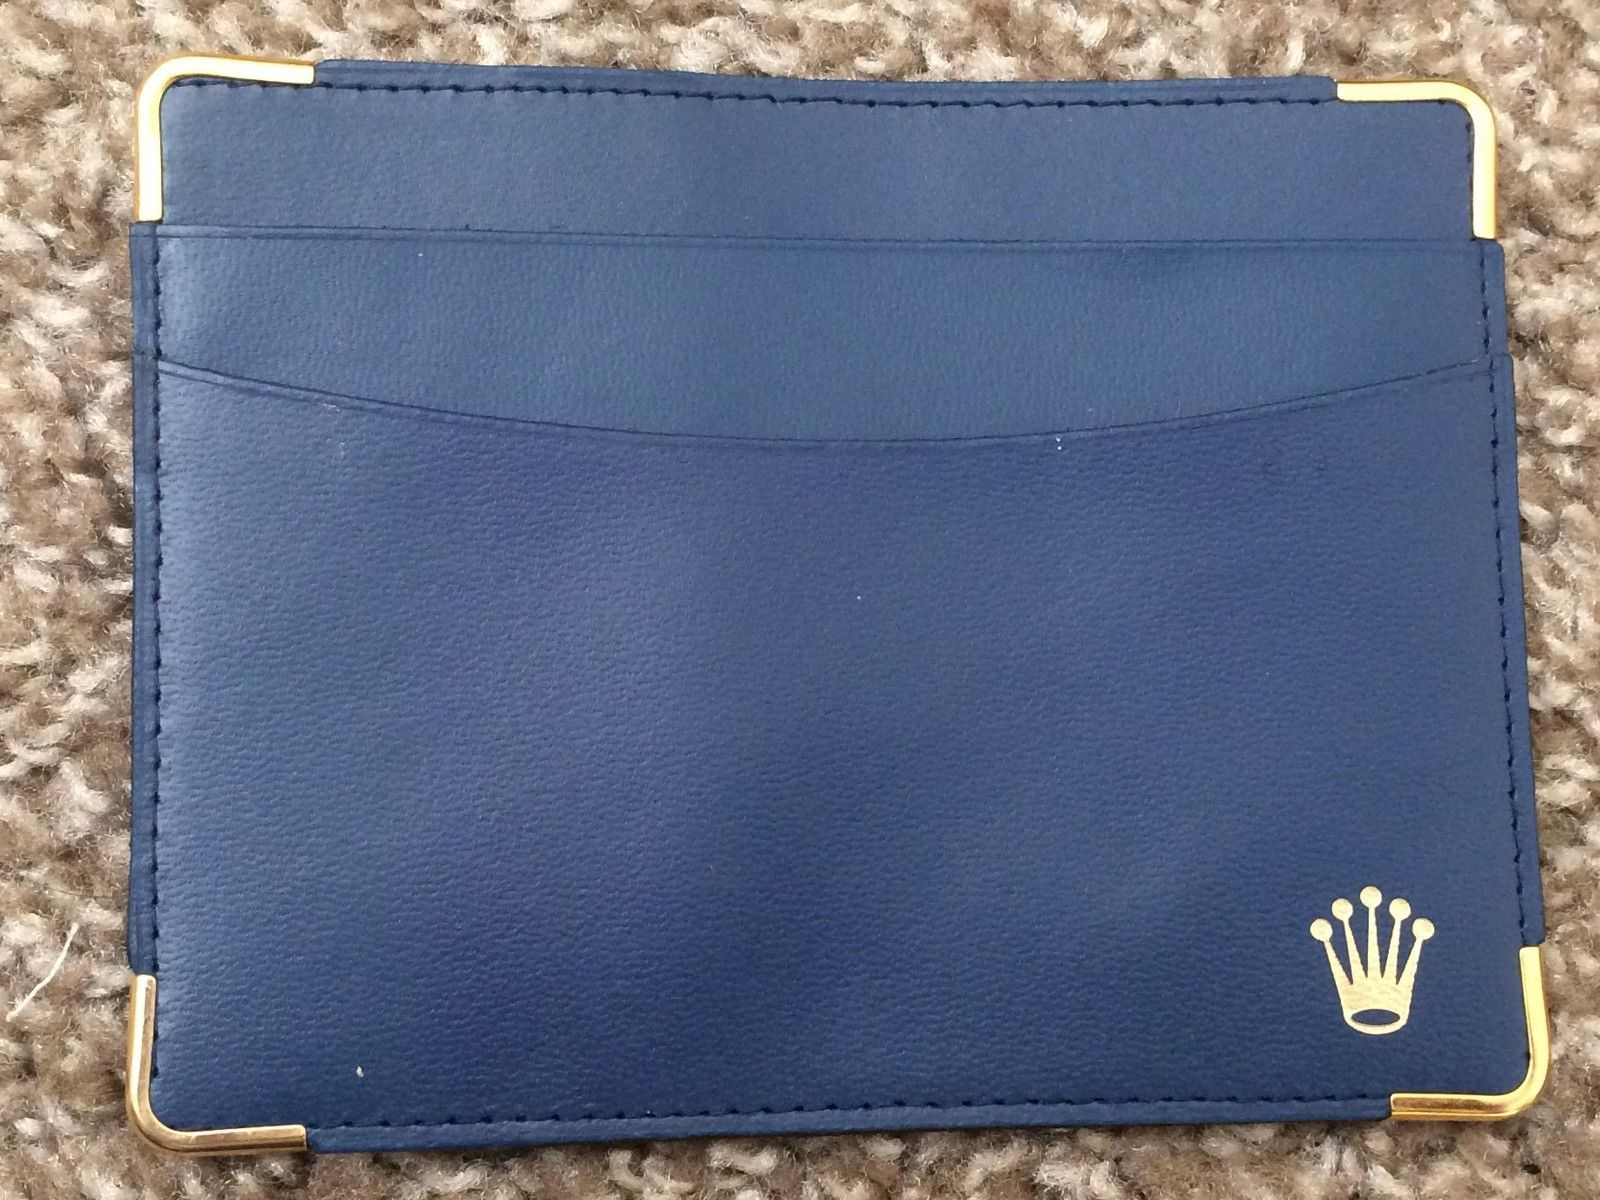 New Mens Ladies Rolex Leather Id Business Card Credit Card Holder Wallet Case Credit Card Holder Wallet Card Holder Wallet Credit Card Holder